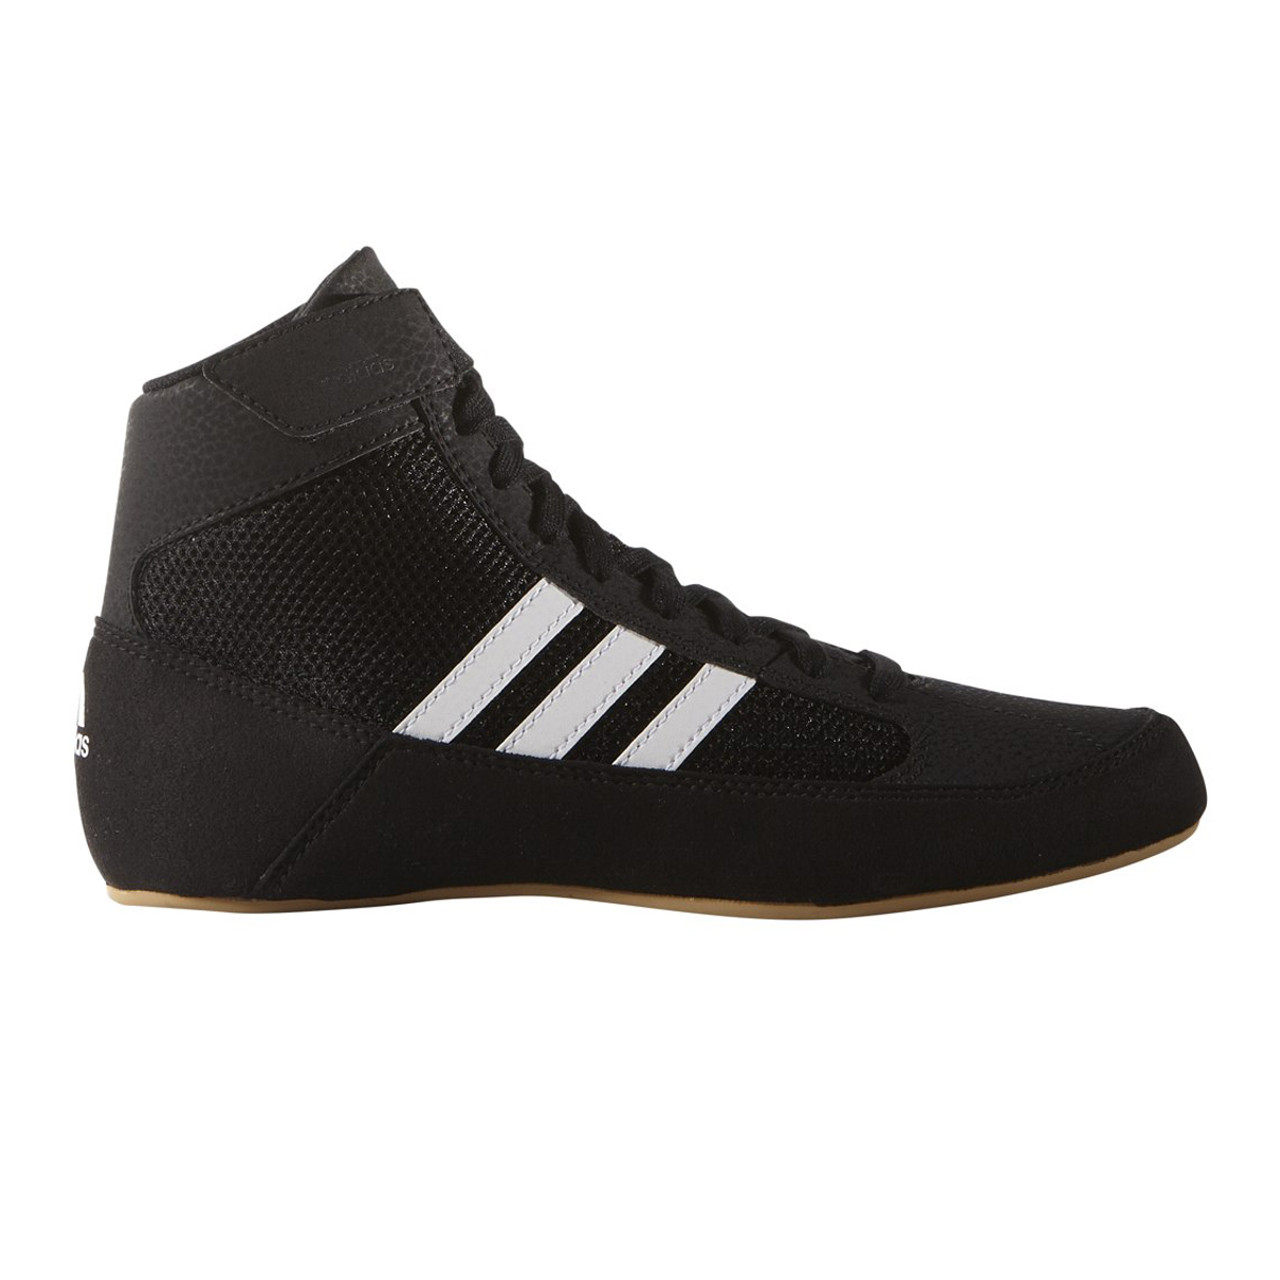 ee4406ba49fc Adidas HVC 2 Youth Wrestling Shoes AQ3327 - Black   White ...